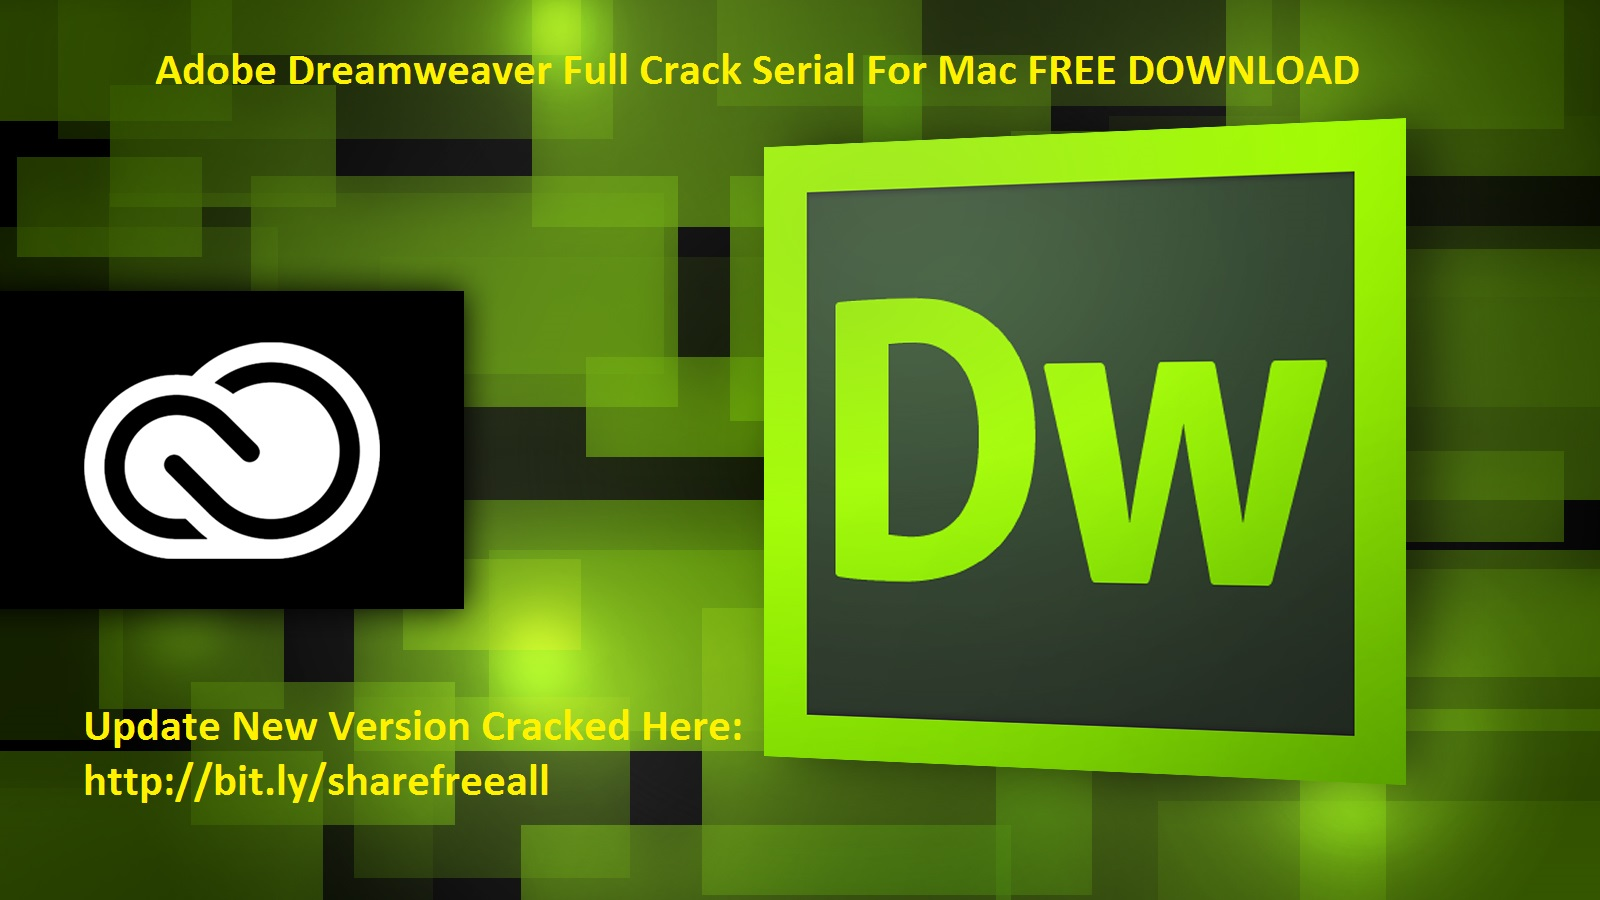 Adobe Dreamweaver CC 2018 v18.0 Cracked Serial For Mac OS Free Download